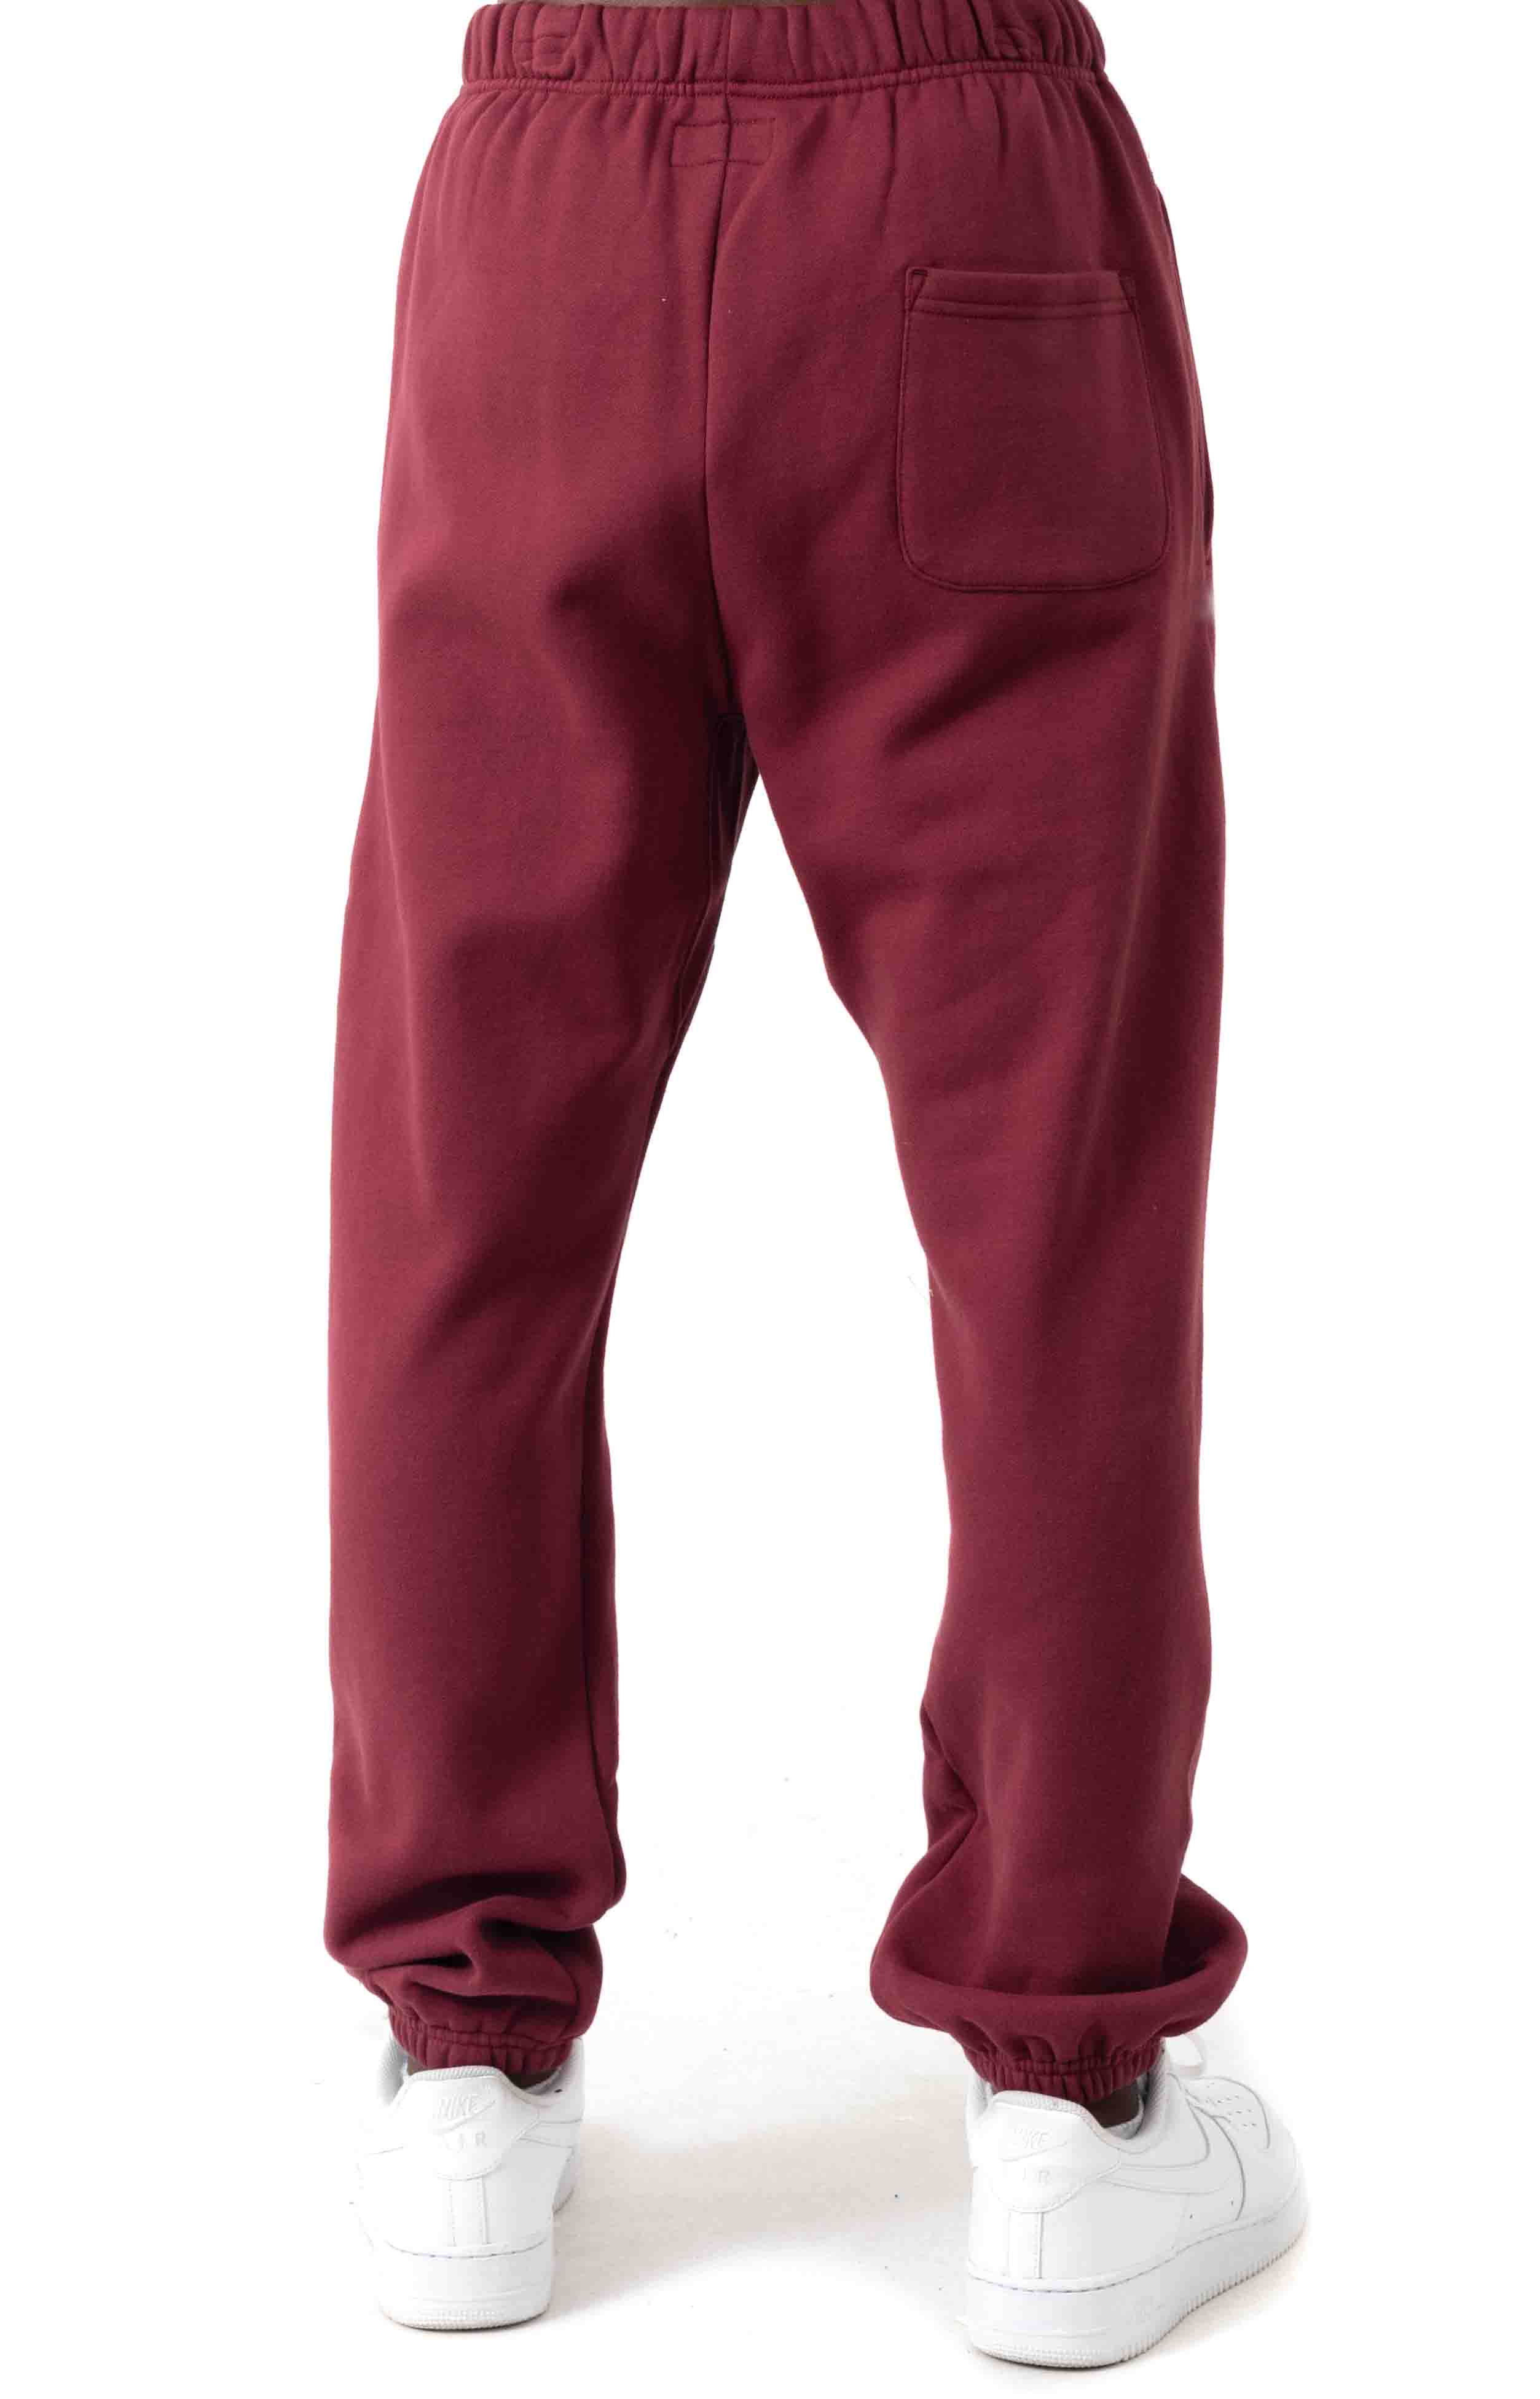 Butterfly Embroidered Sweatpants - Burgundy  3